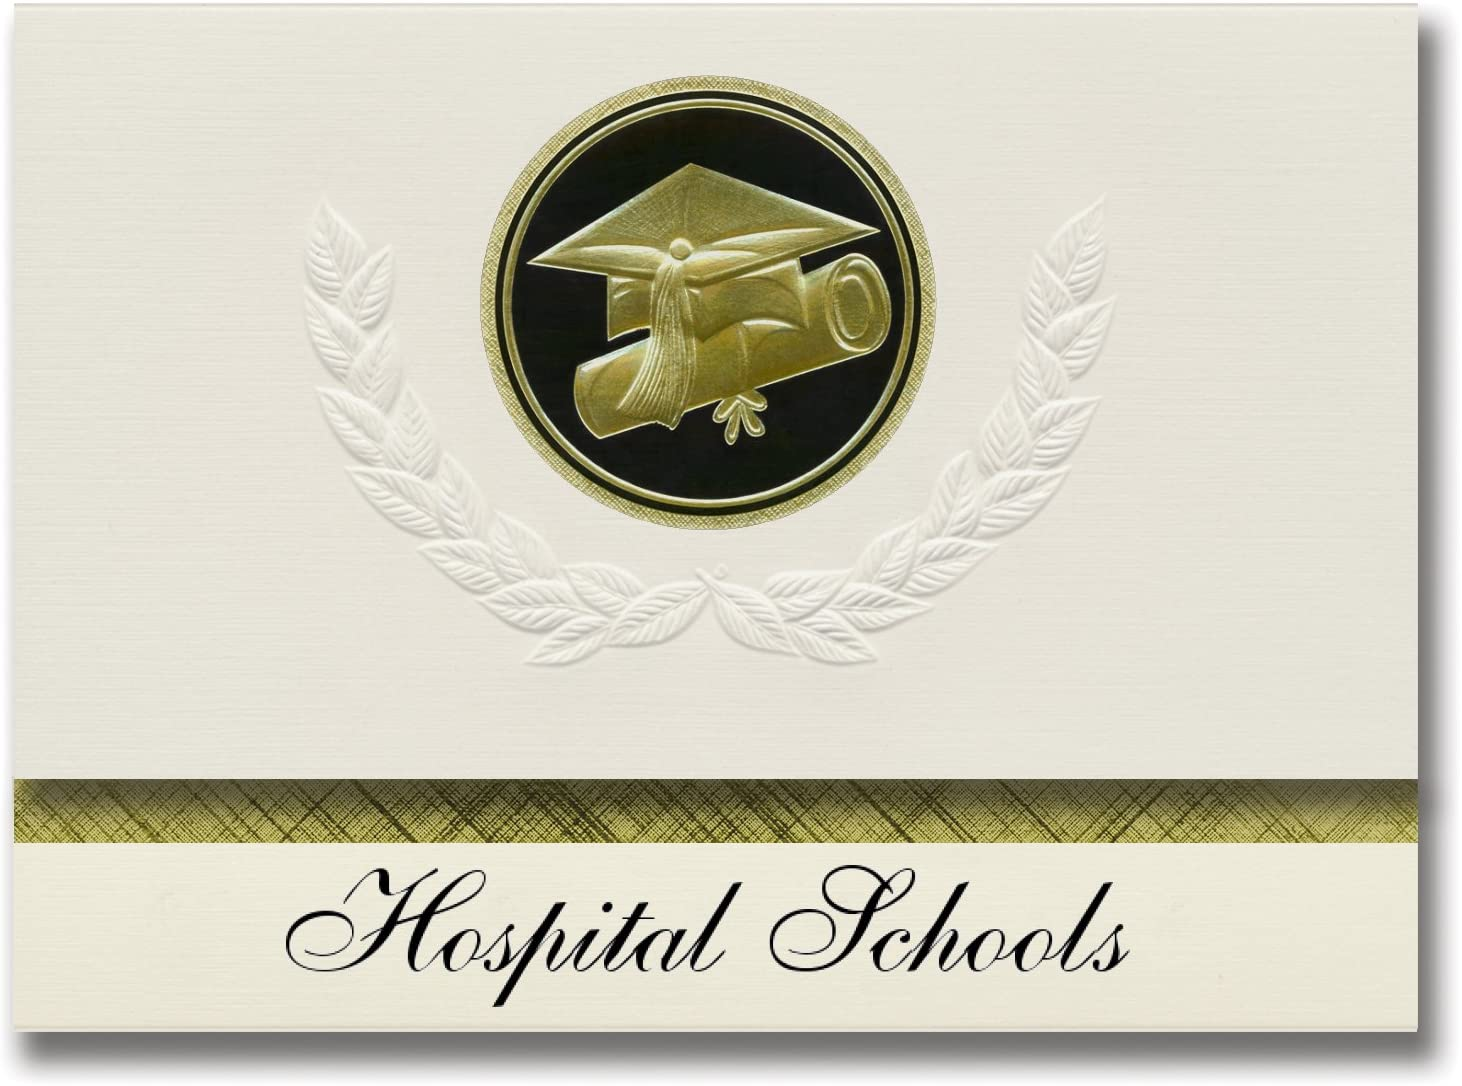 Signature Announcements Hospital Schools (Bronx, NY) Graduation Announcements, Presidential style, Elite package of 25 Cap & Diploma Seal Black & Gold